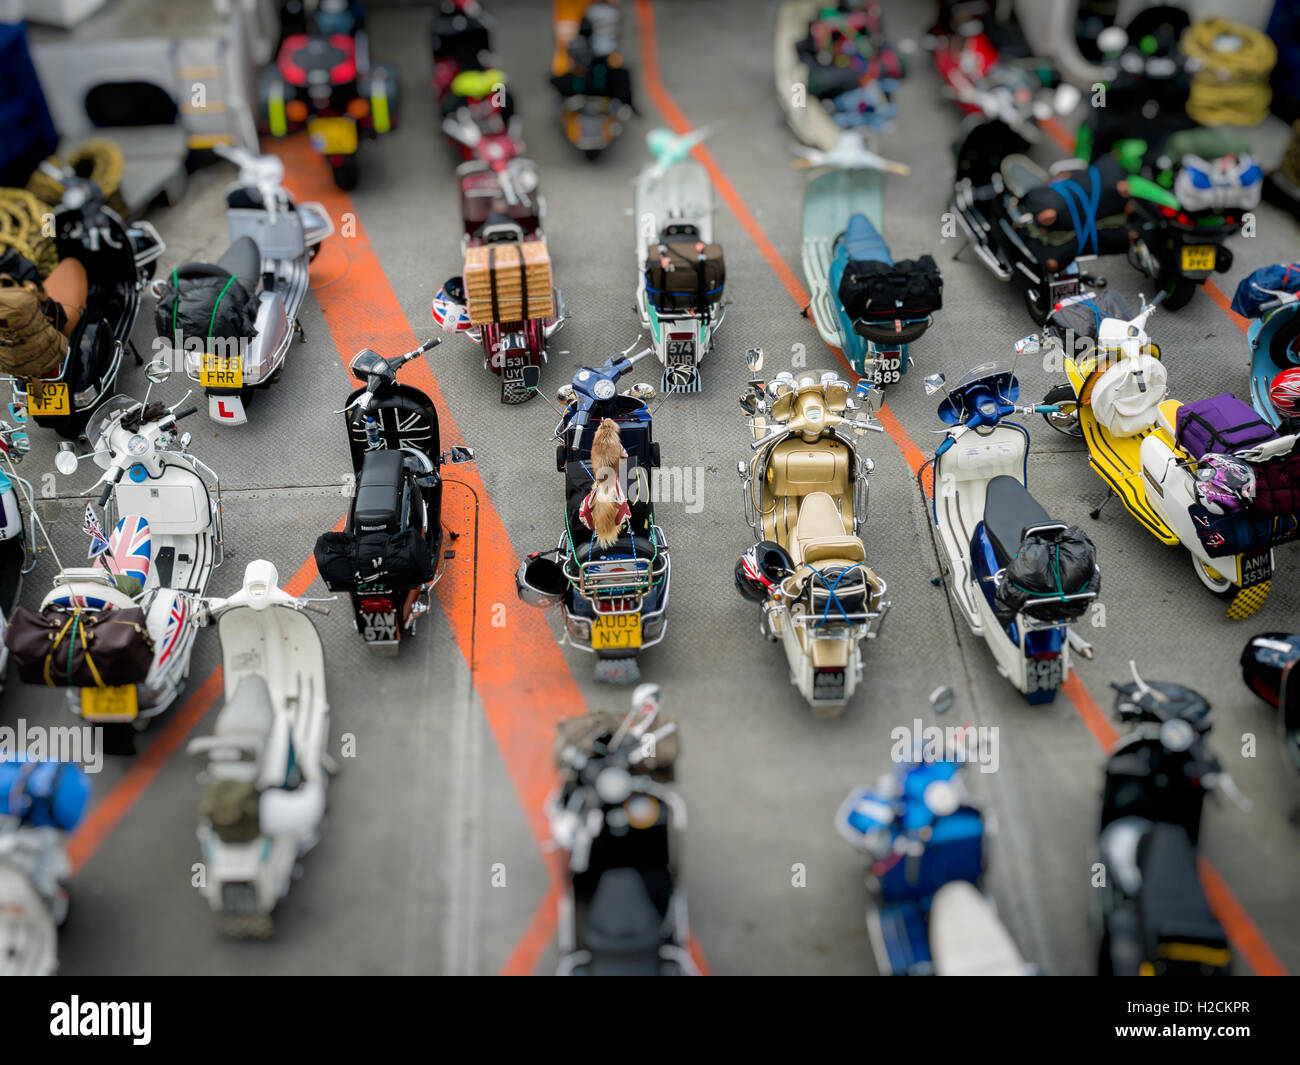 Scooters Lined up Onboard a Ferry, Portsmouth, Britain - Stock Image